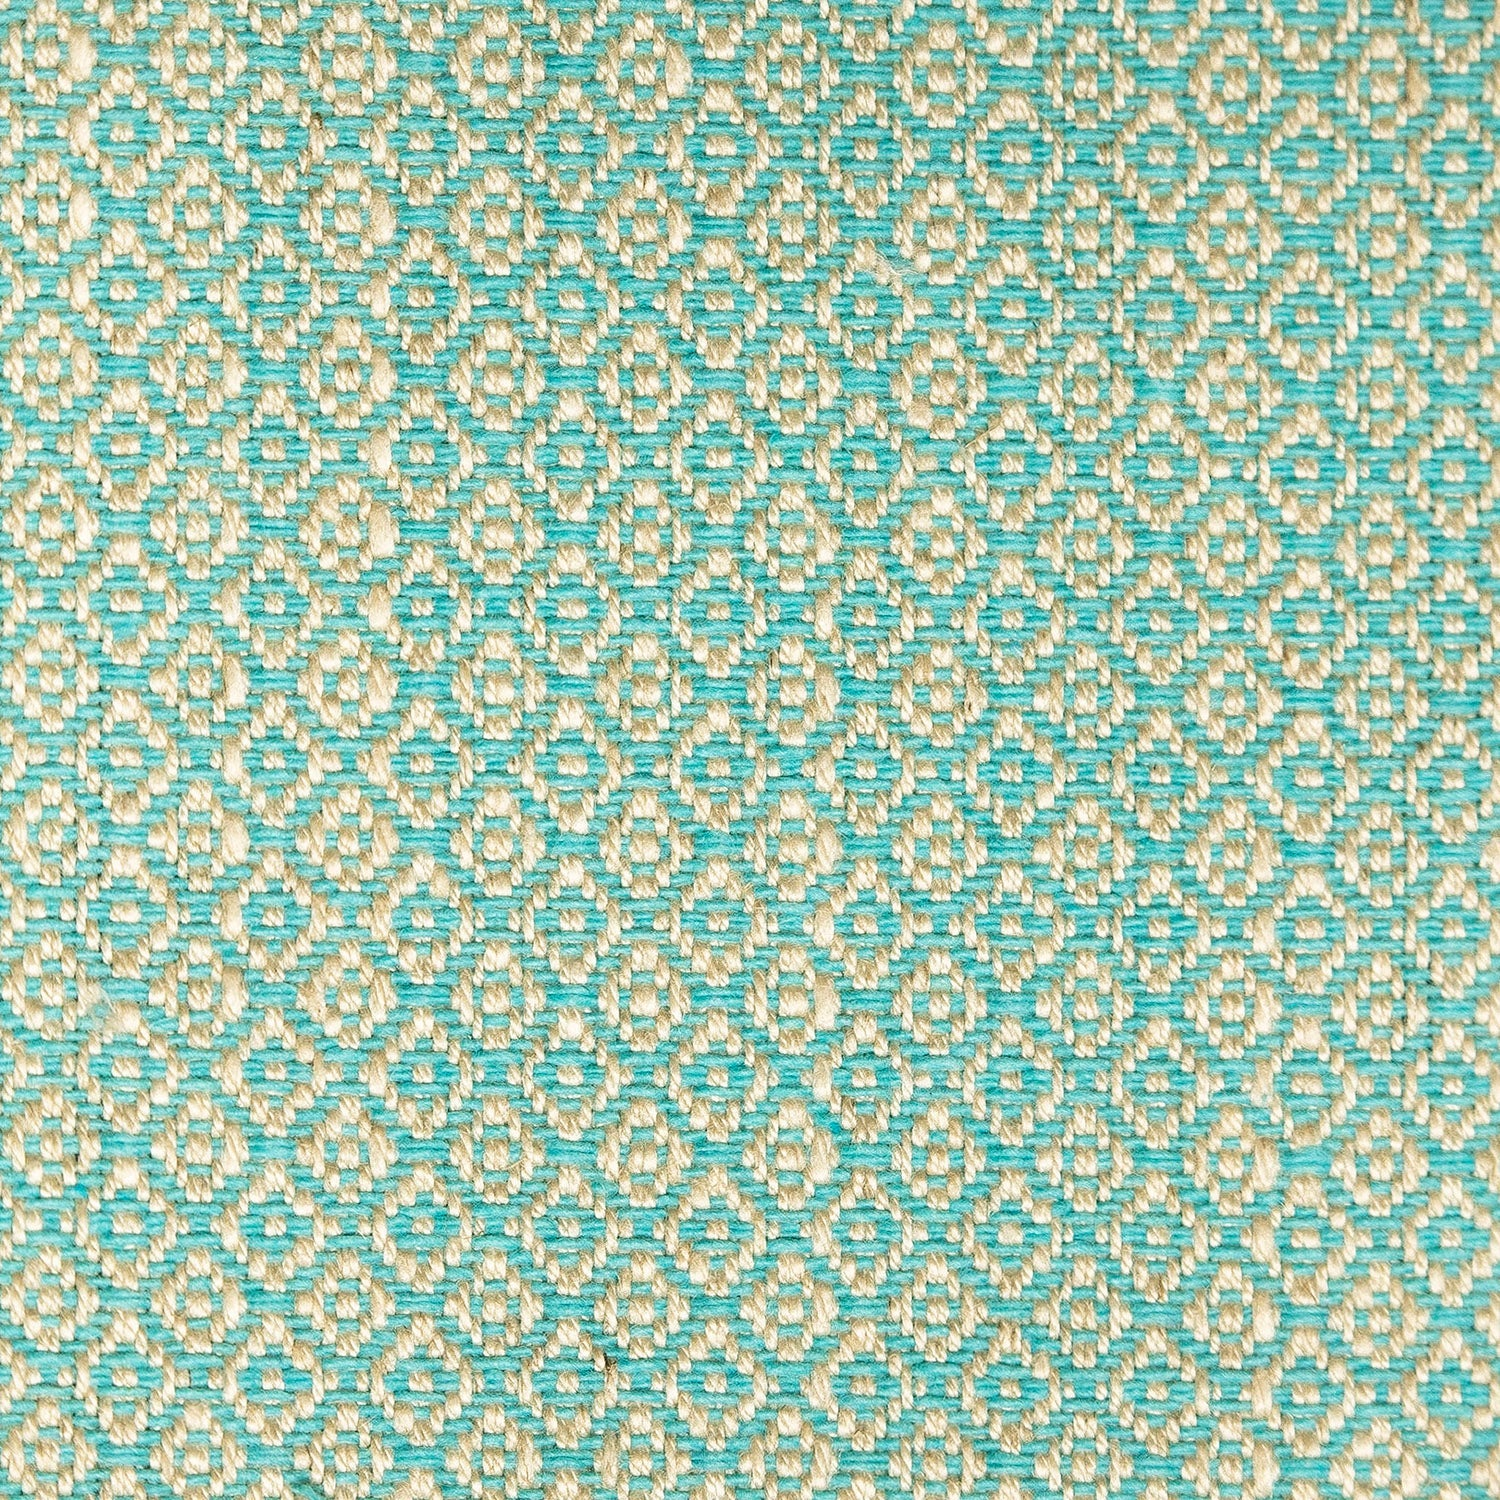 Fabric sample of a turquoise and neutral weave fabric with a small diamond design and stain resistant finish for curtains and upholstery